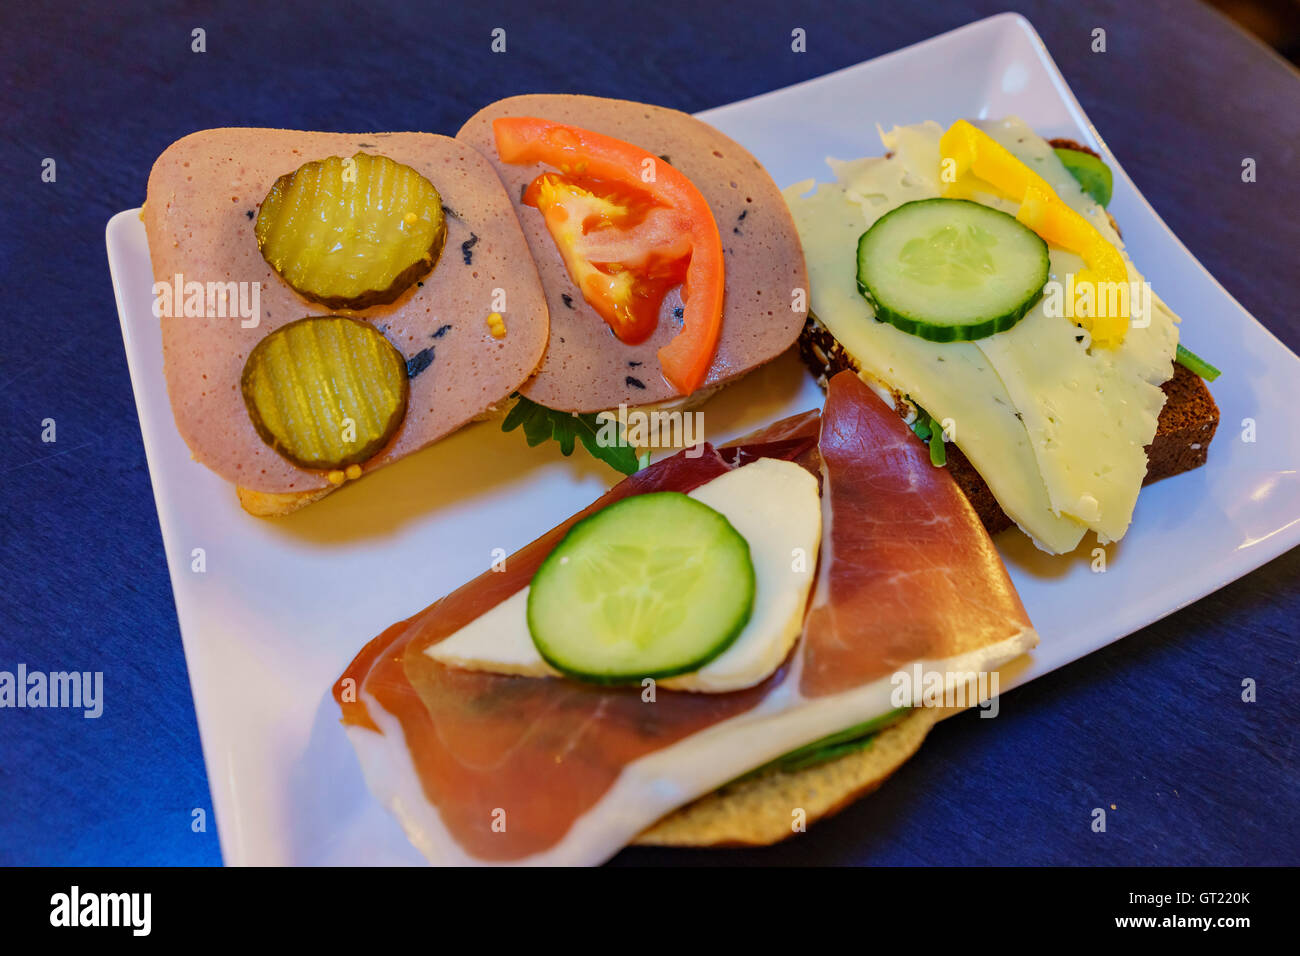 Traditional Sweden style breakfast sandwich with tomato, ham, cucumber and pickle - Stock Image